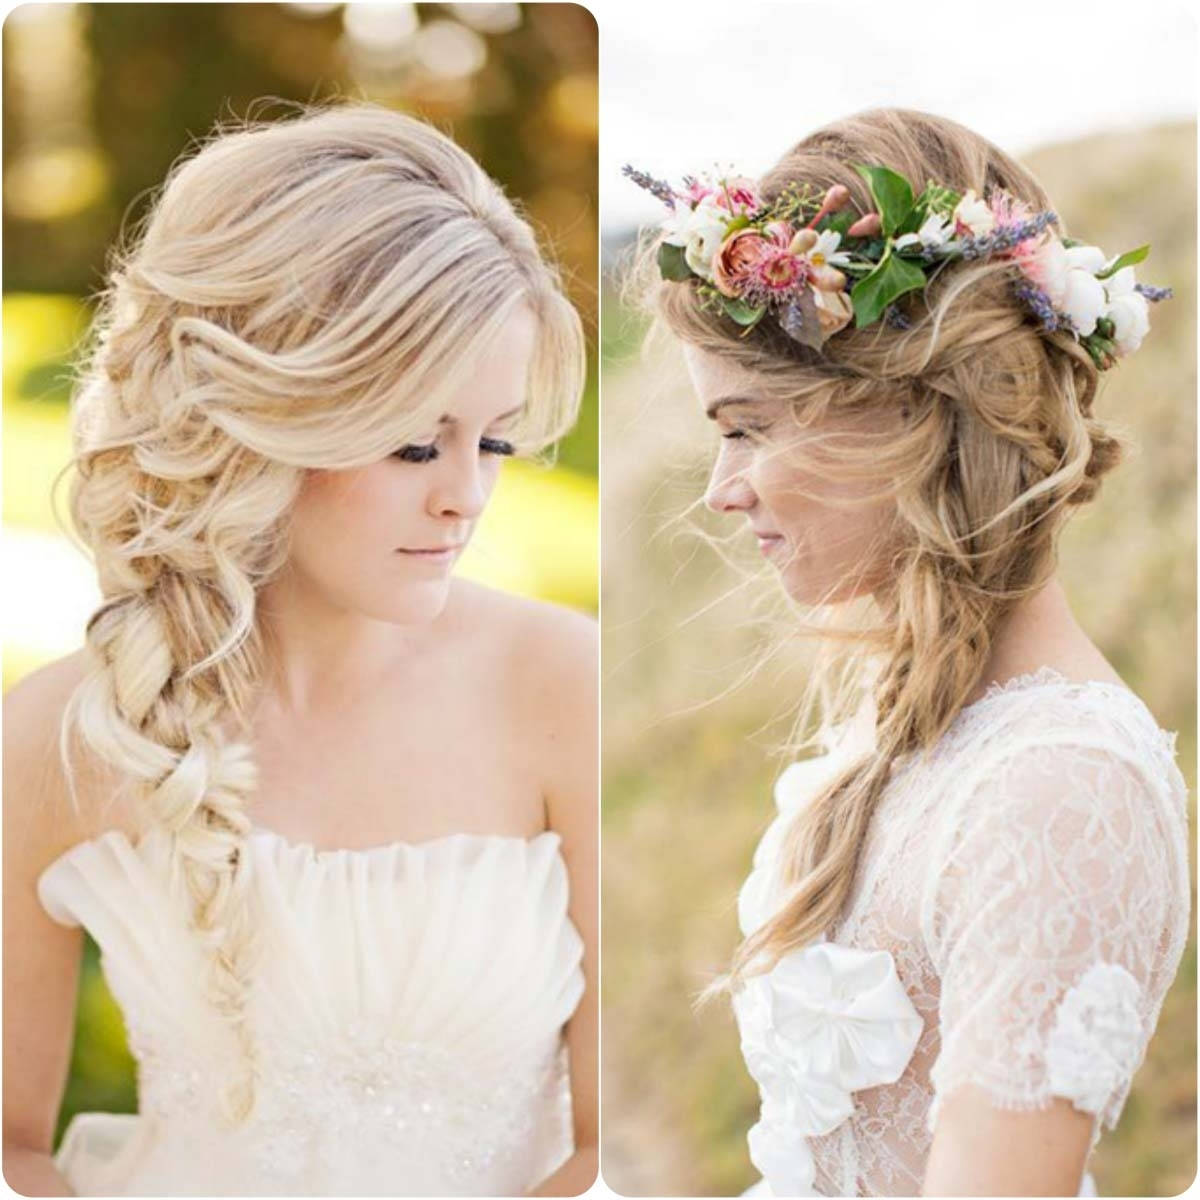 Best And Newest Braided Wedding Hairstyles Throughout Sideraid Hairstyles For Weddings Hairstyle Indian Wedding Fishtail (View 5 of 15)